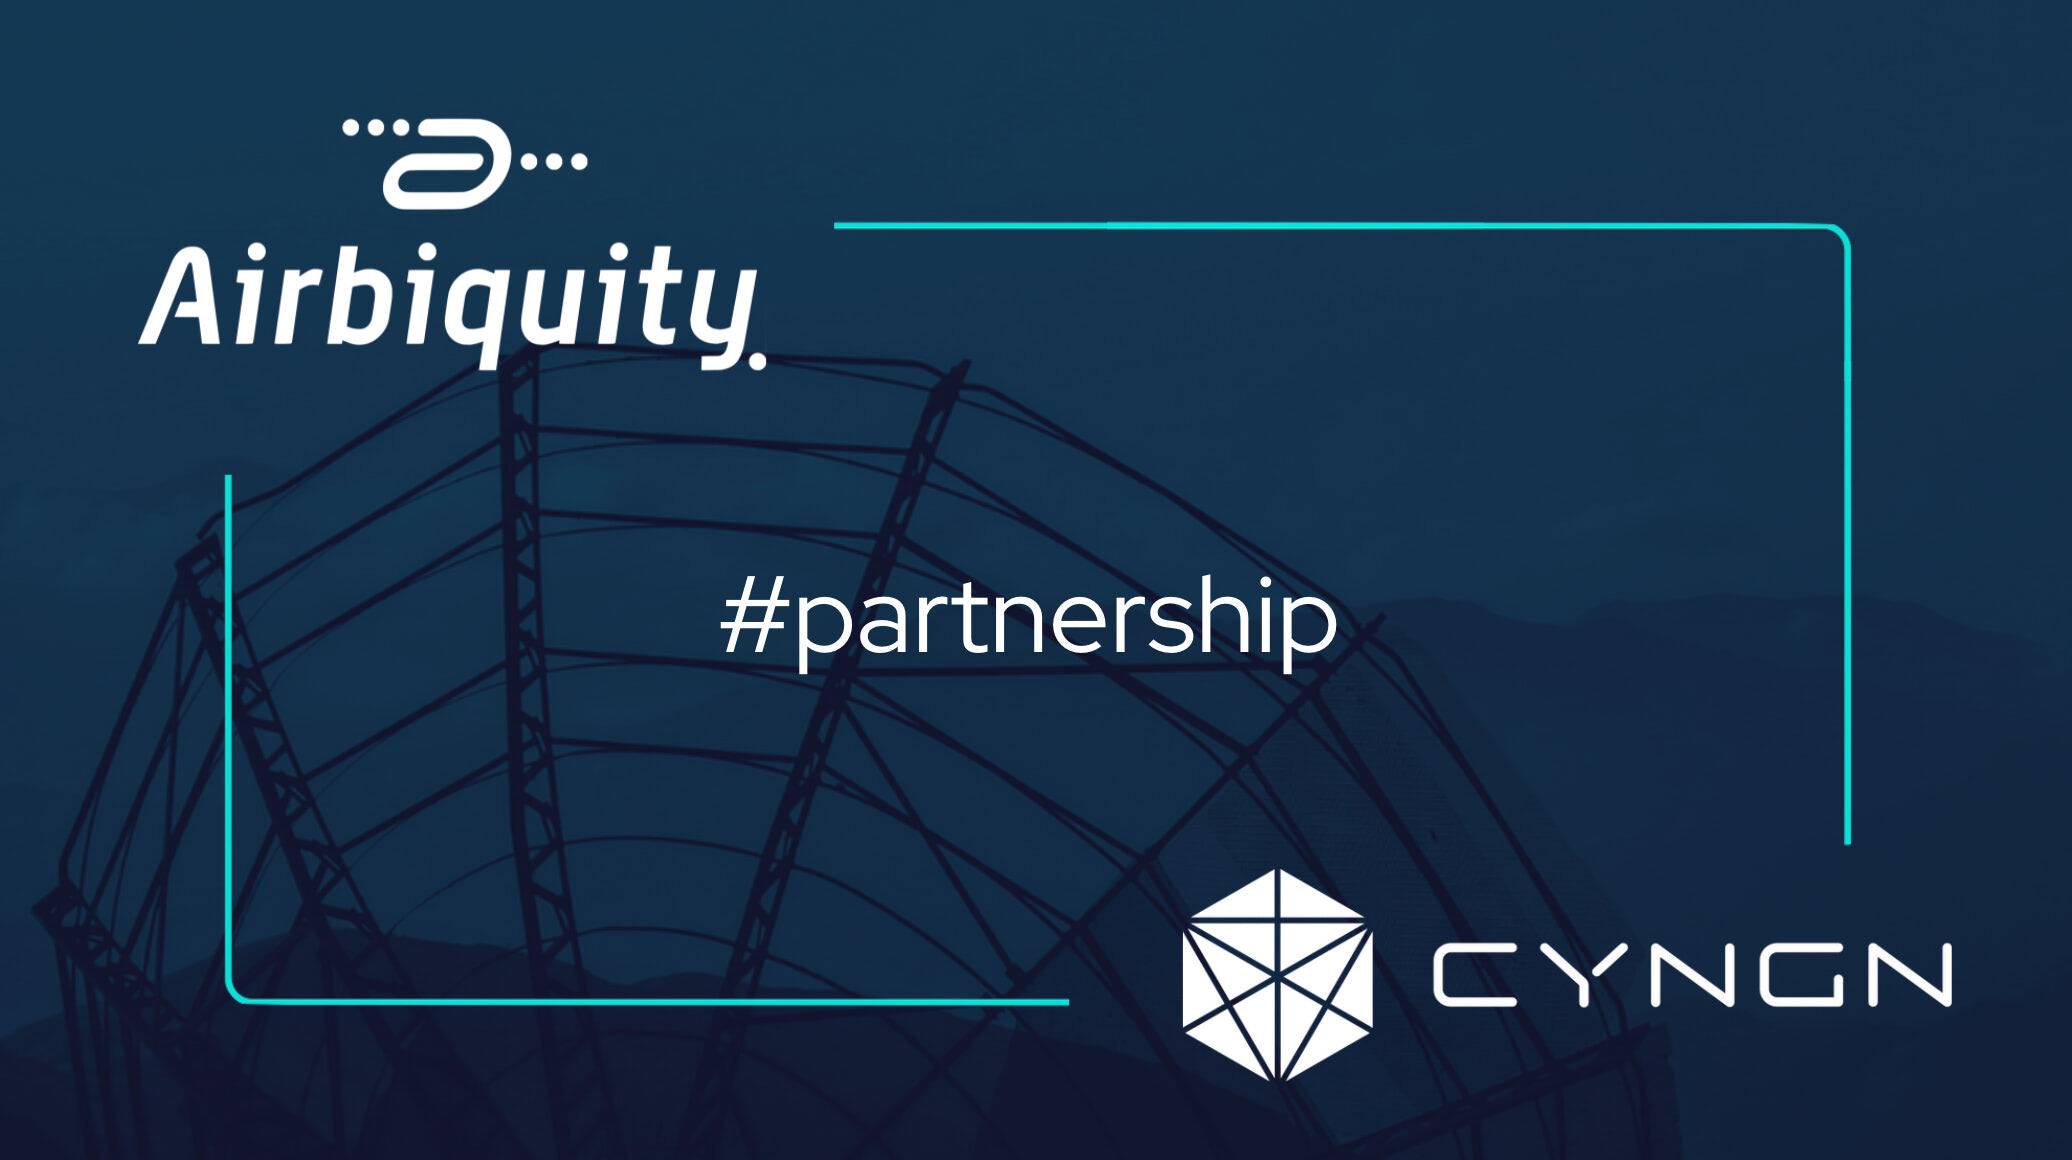 Airbiquity Partners with Cyngn to Help Material Handling Companies Evolve Vehicle Fleets into Autonomous Systems